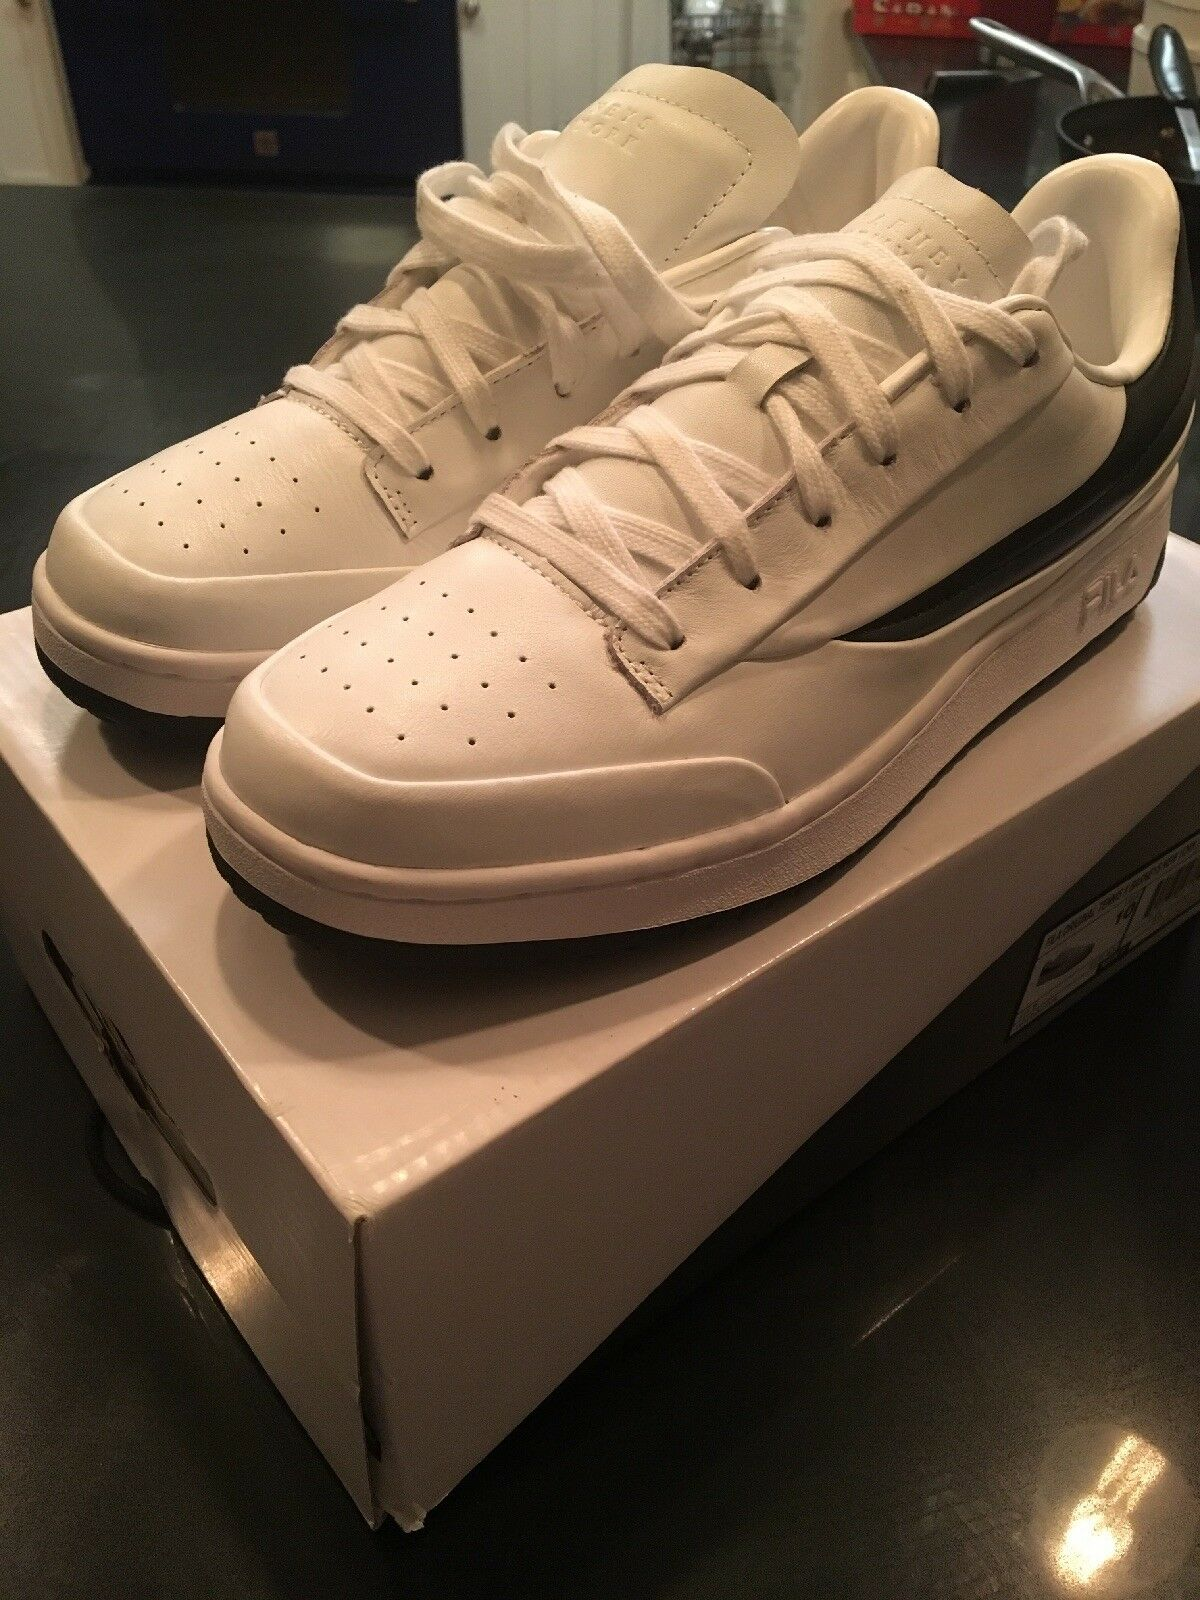 Mens white Fila x Barney's New York leather sneakers